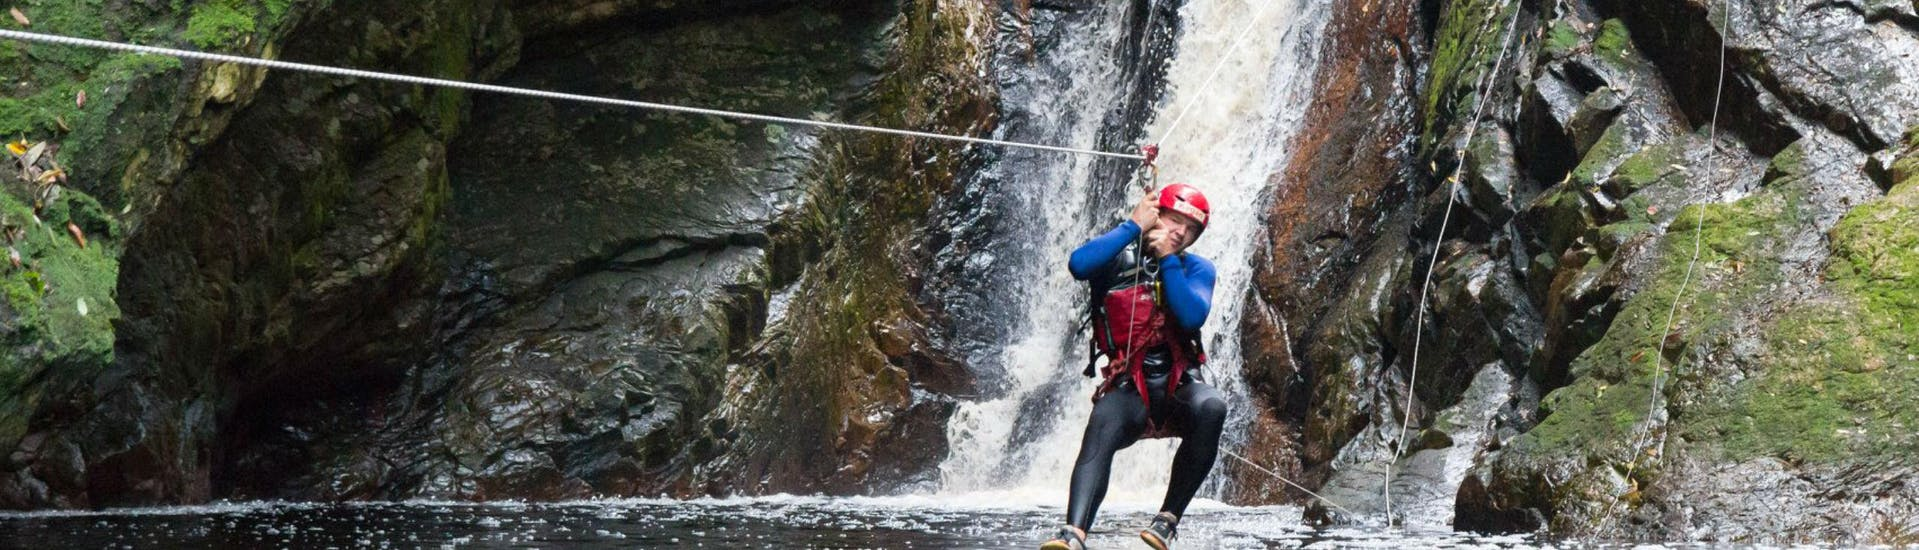 canyoning-in-the-crags-standard-full-monty-tour-africanyon-hero